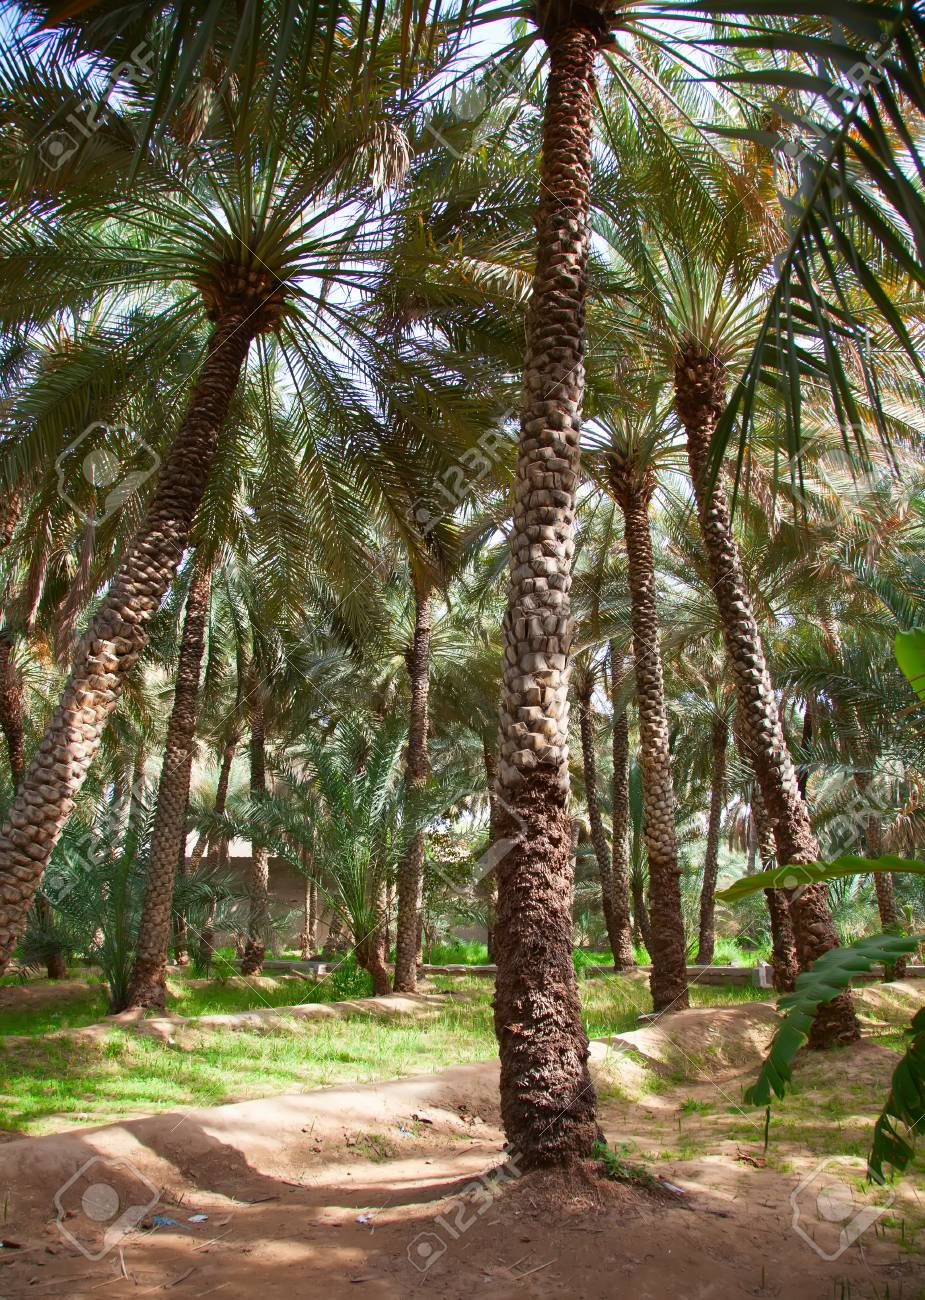 Palm Garden In The Al Ain Oasis Stock Photo, Picture And Royalty ...